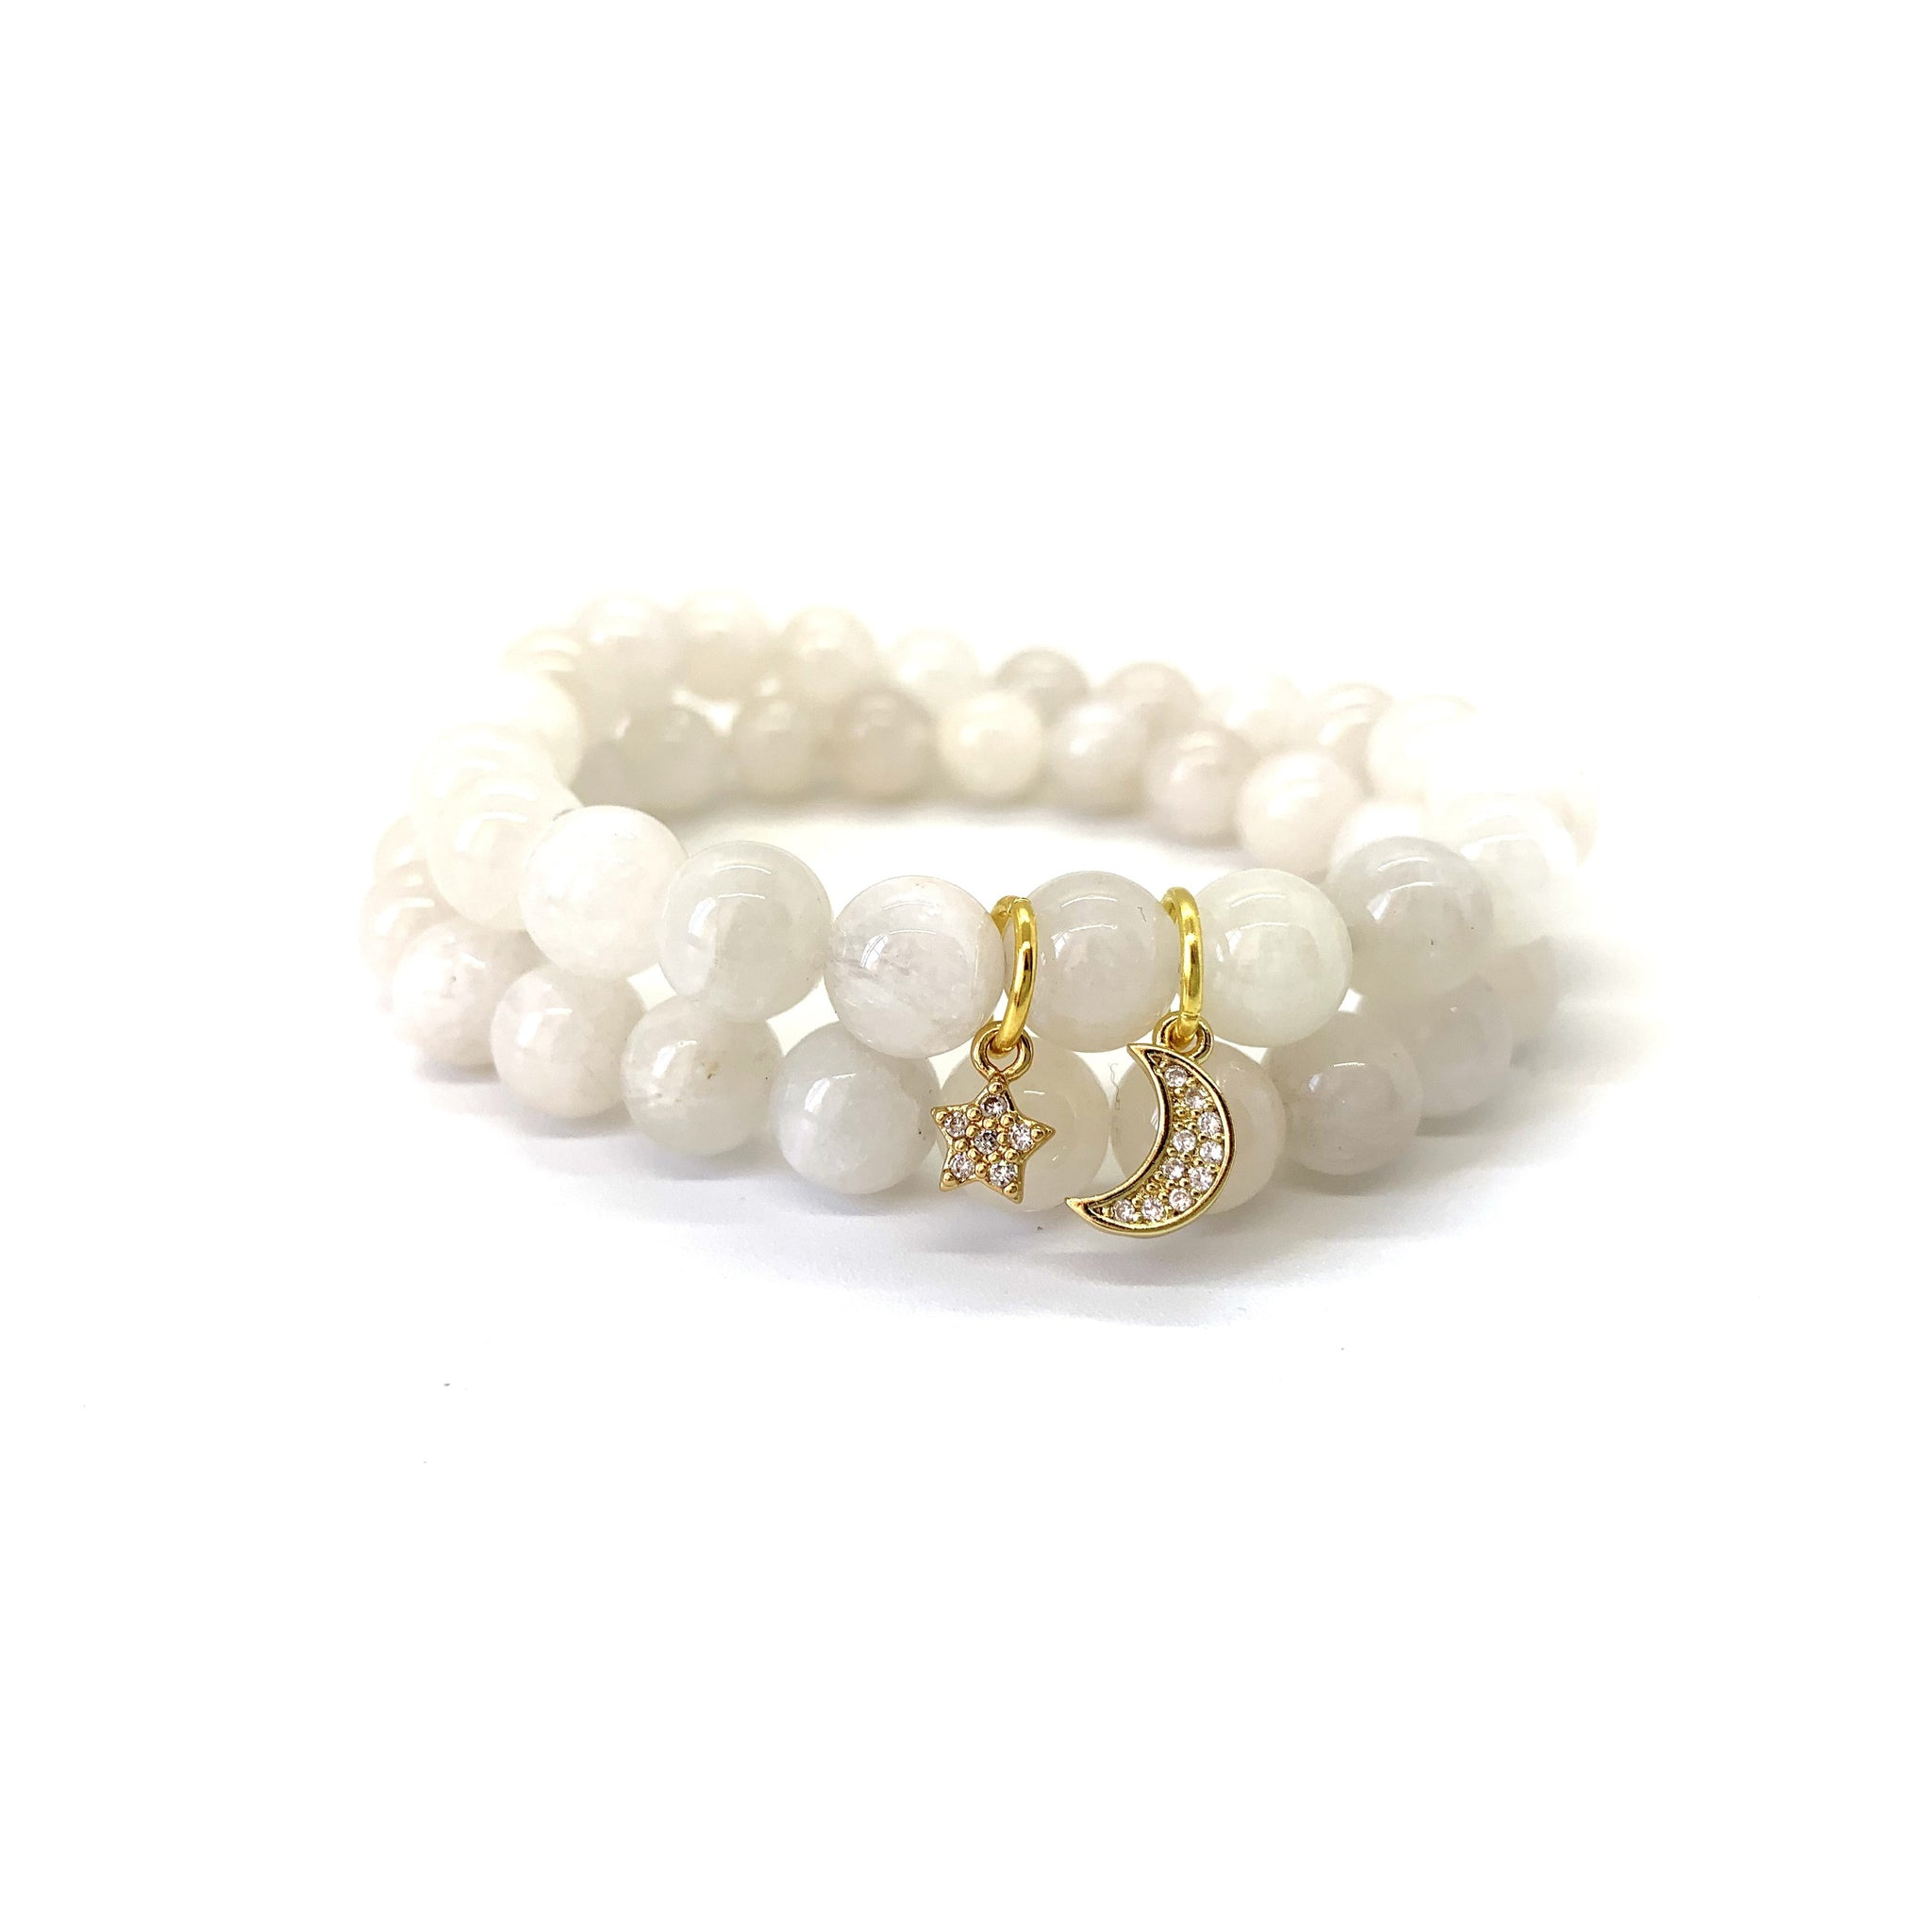 Moon(stone) & Star Charm Bracelet Set for Encouragement